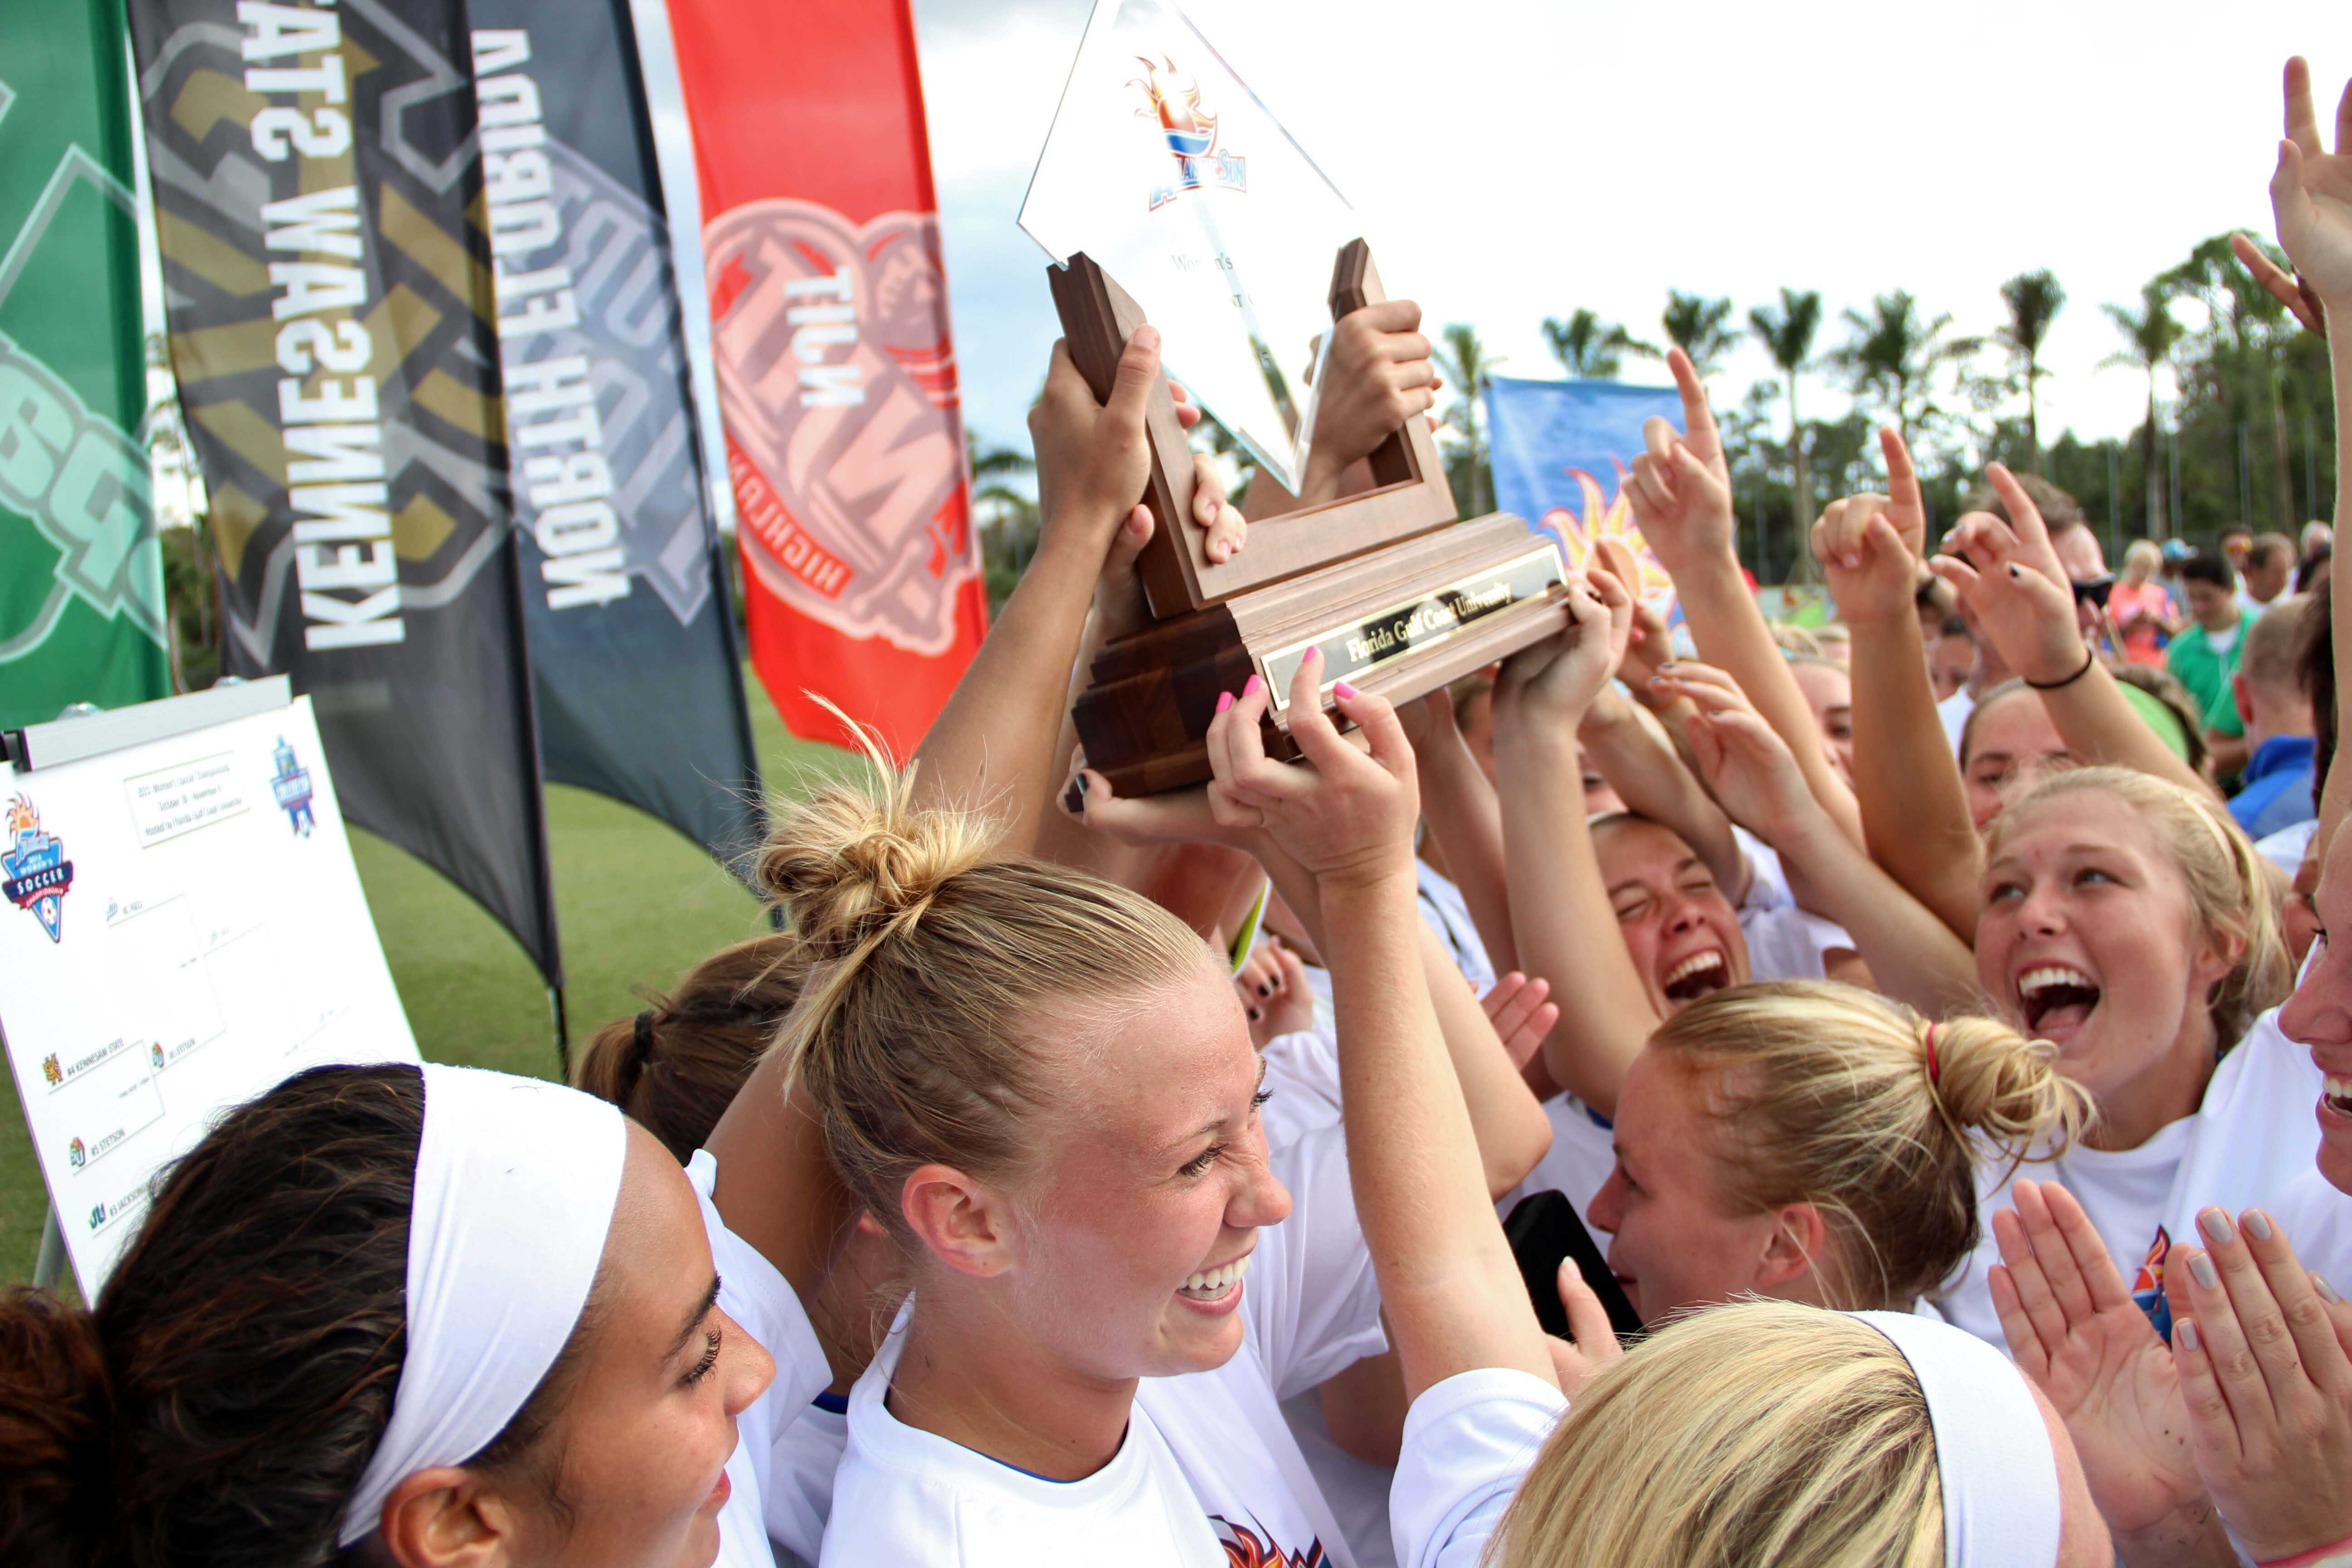 FGCU earns fourth A-Sun championship title with 5-0 win over Lipscomb